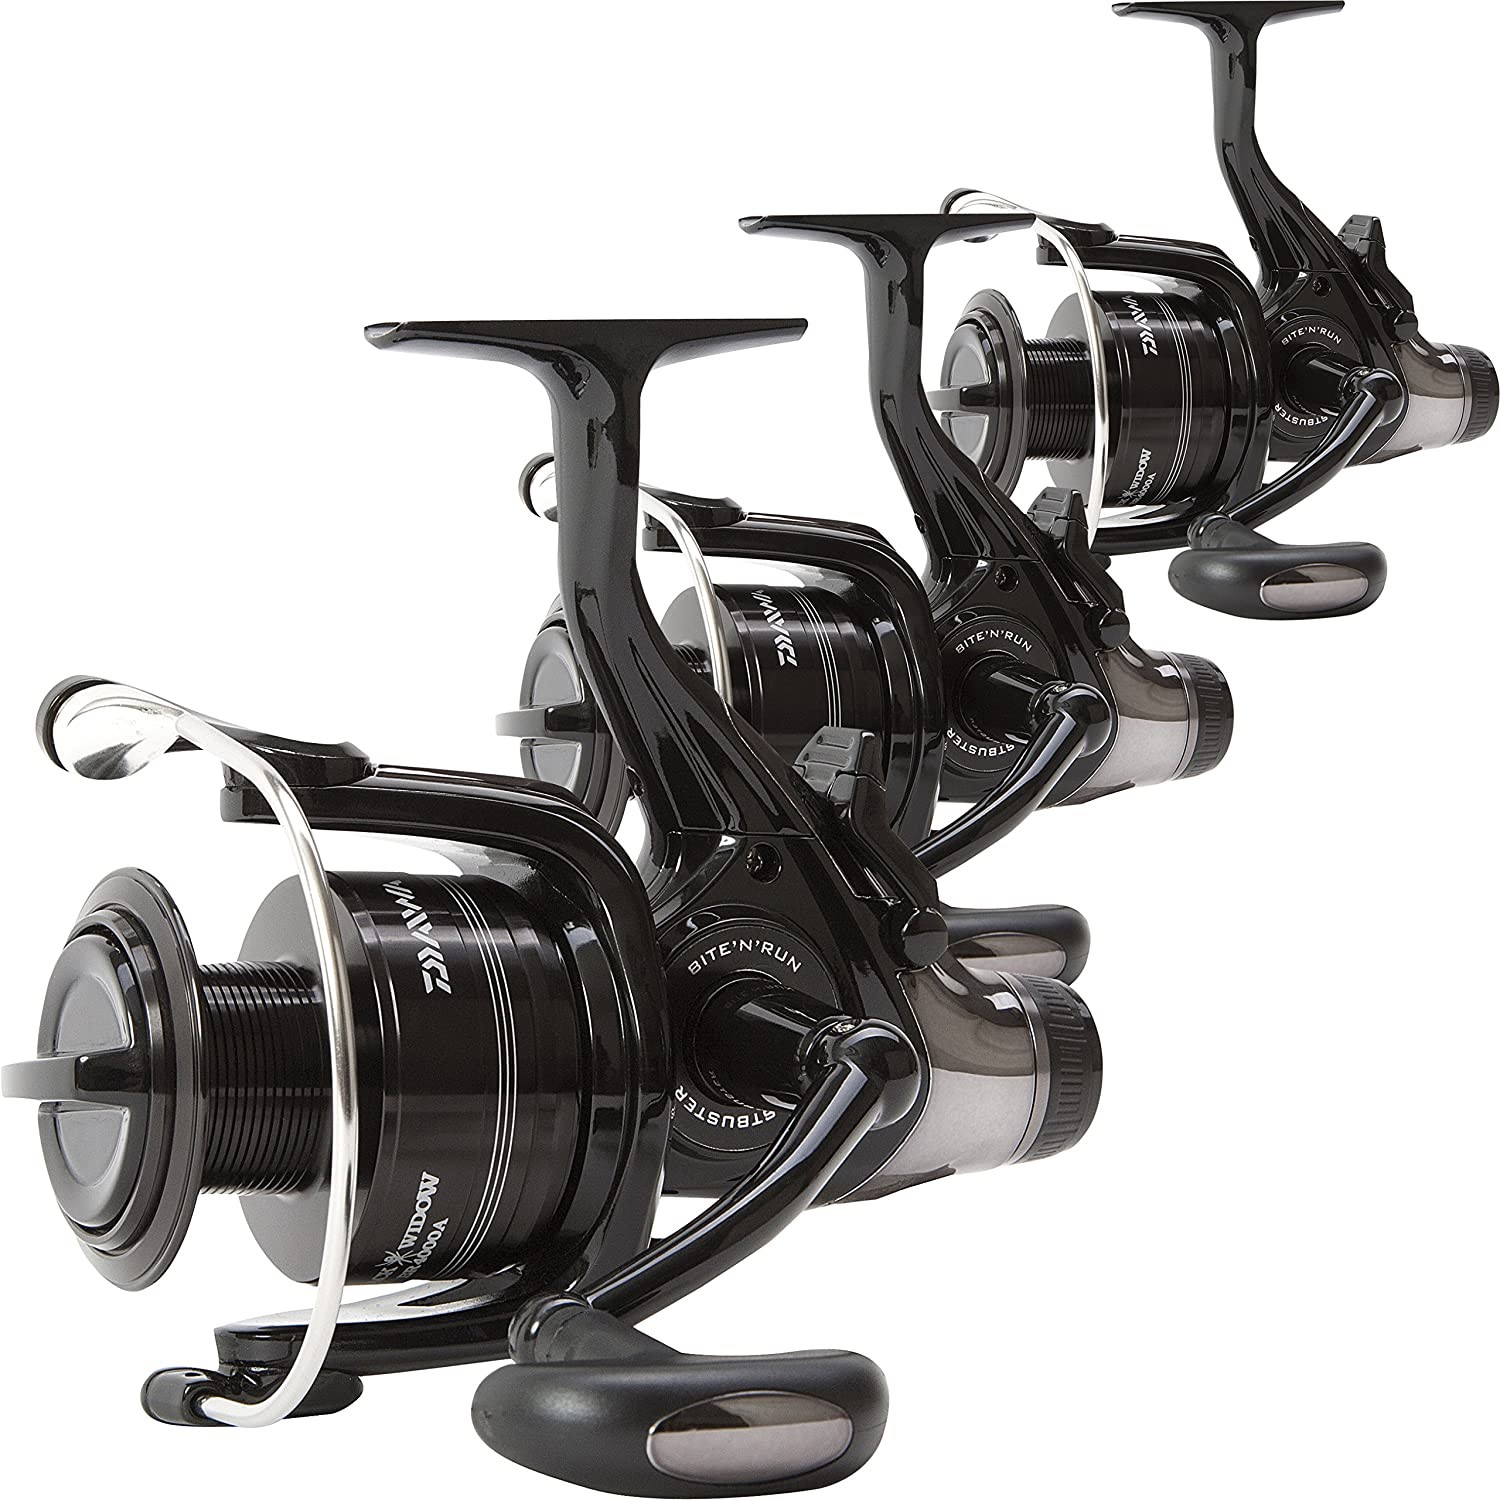 Daiwa Black Widow 4500 BR Front Drag Lightweight Set of 3 Carp Fishing Reels